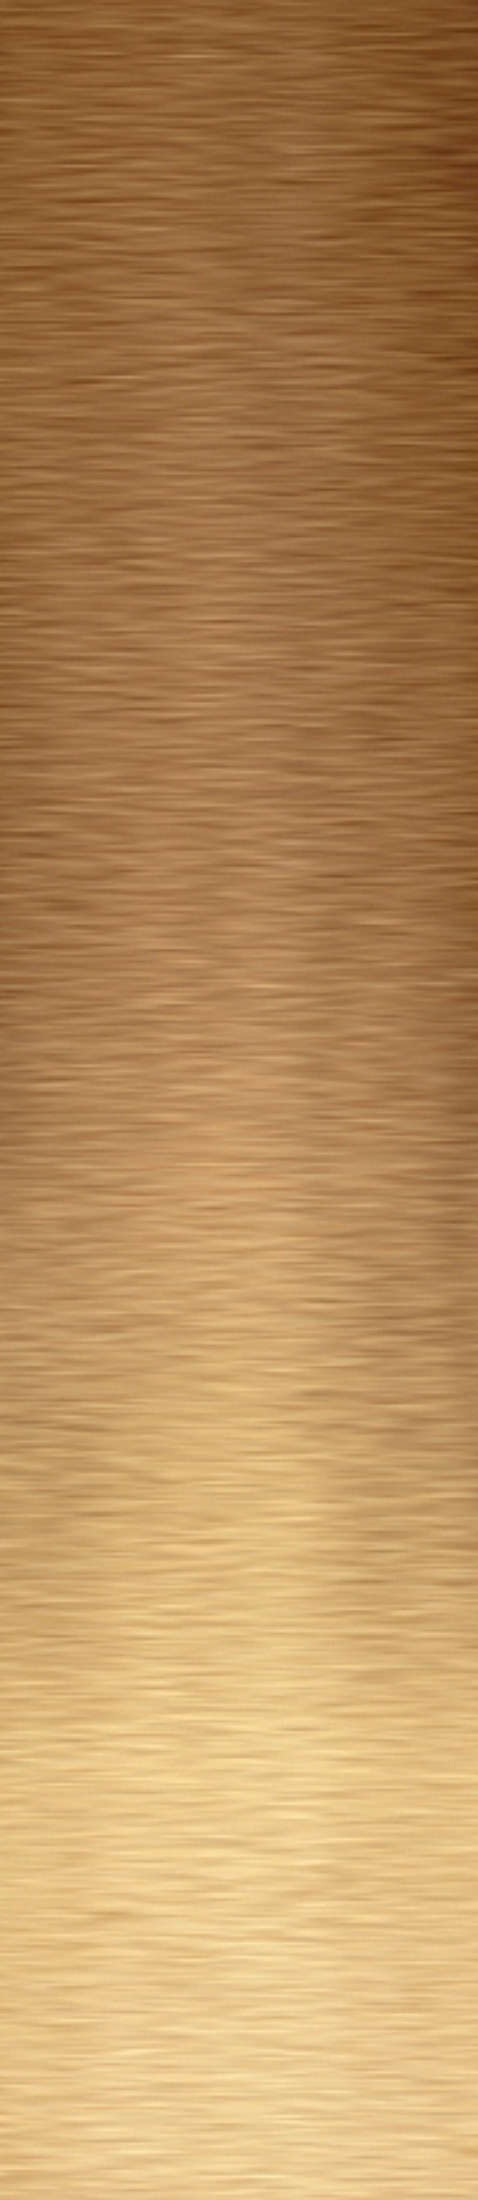 background-wood-pattern.jpg